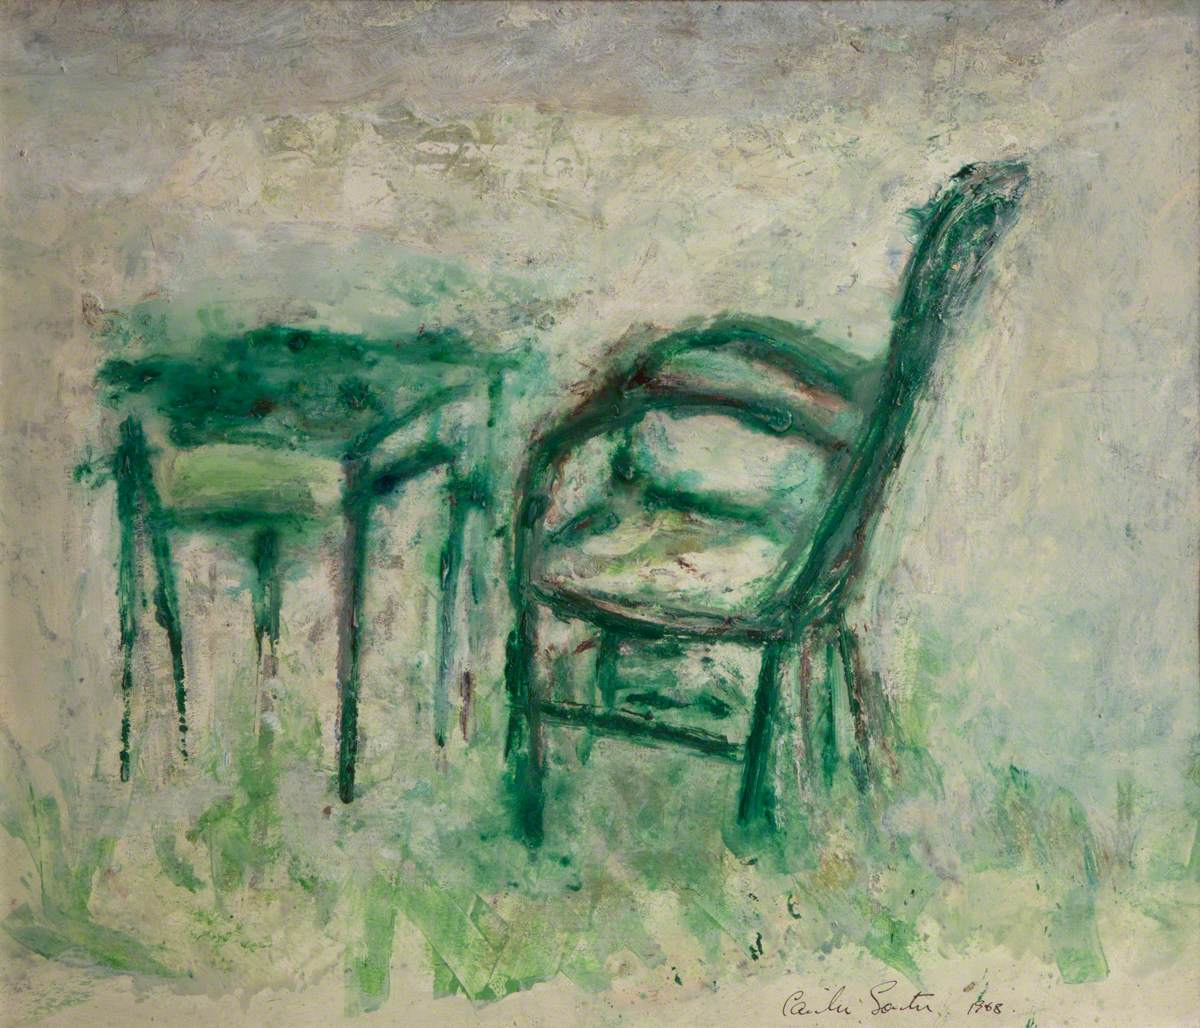 Study of a Desk and Chair